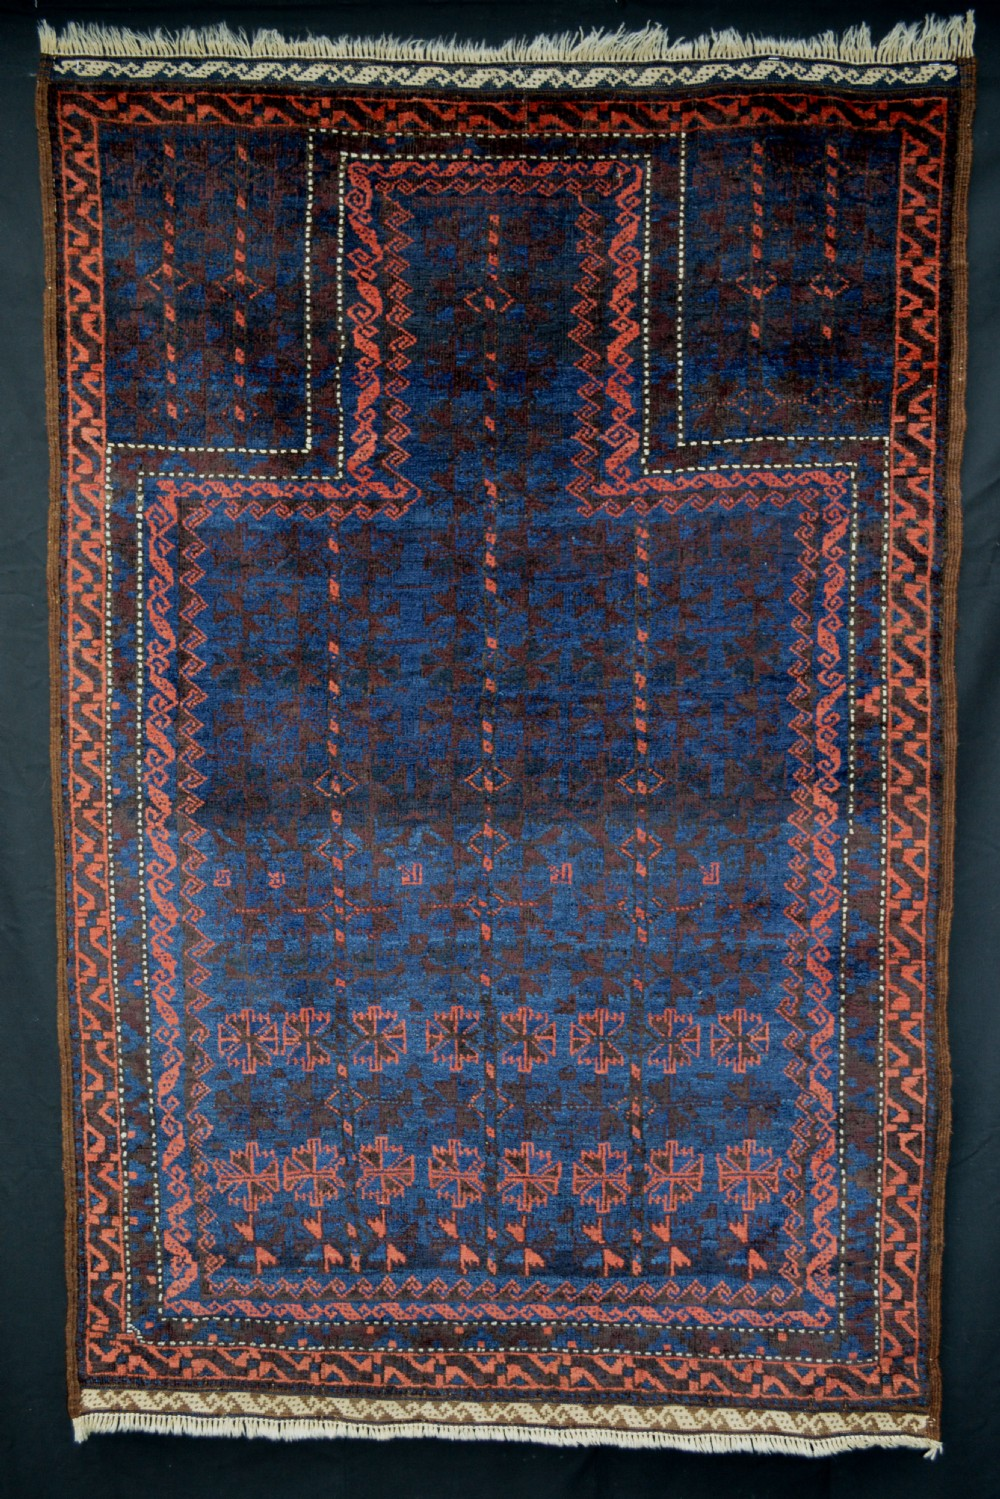 antique prayer rug timuri tribes western afghanistan